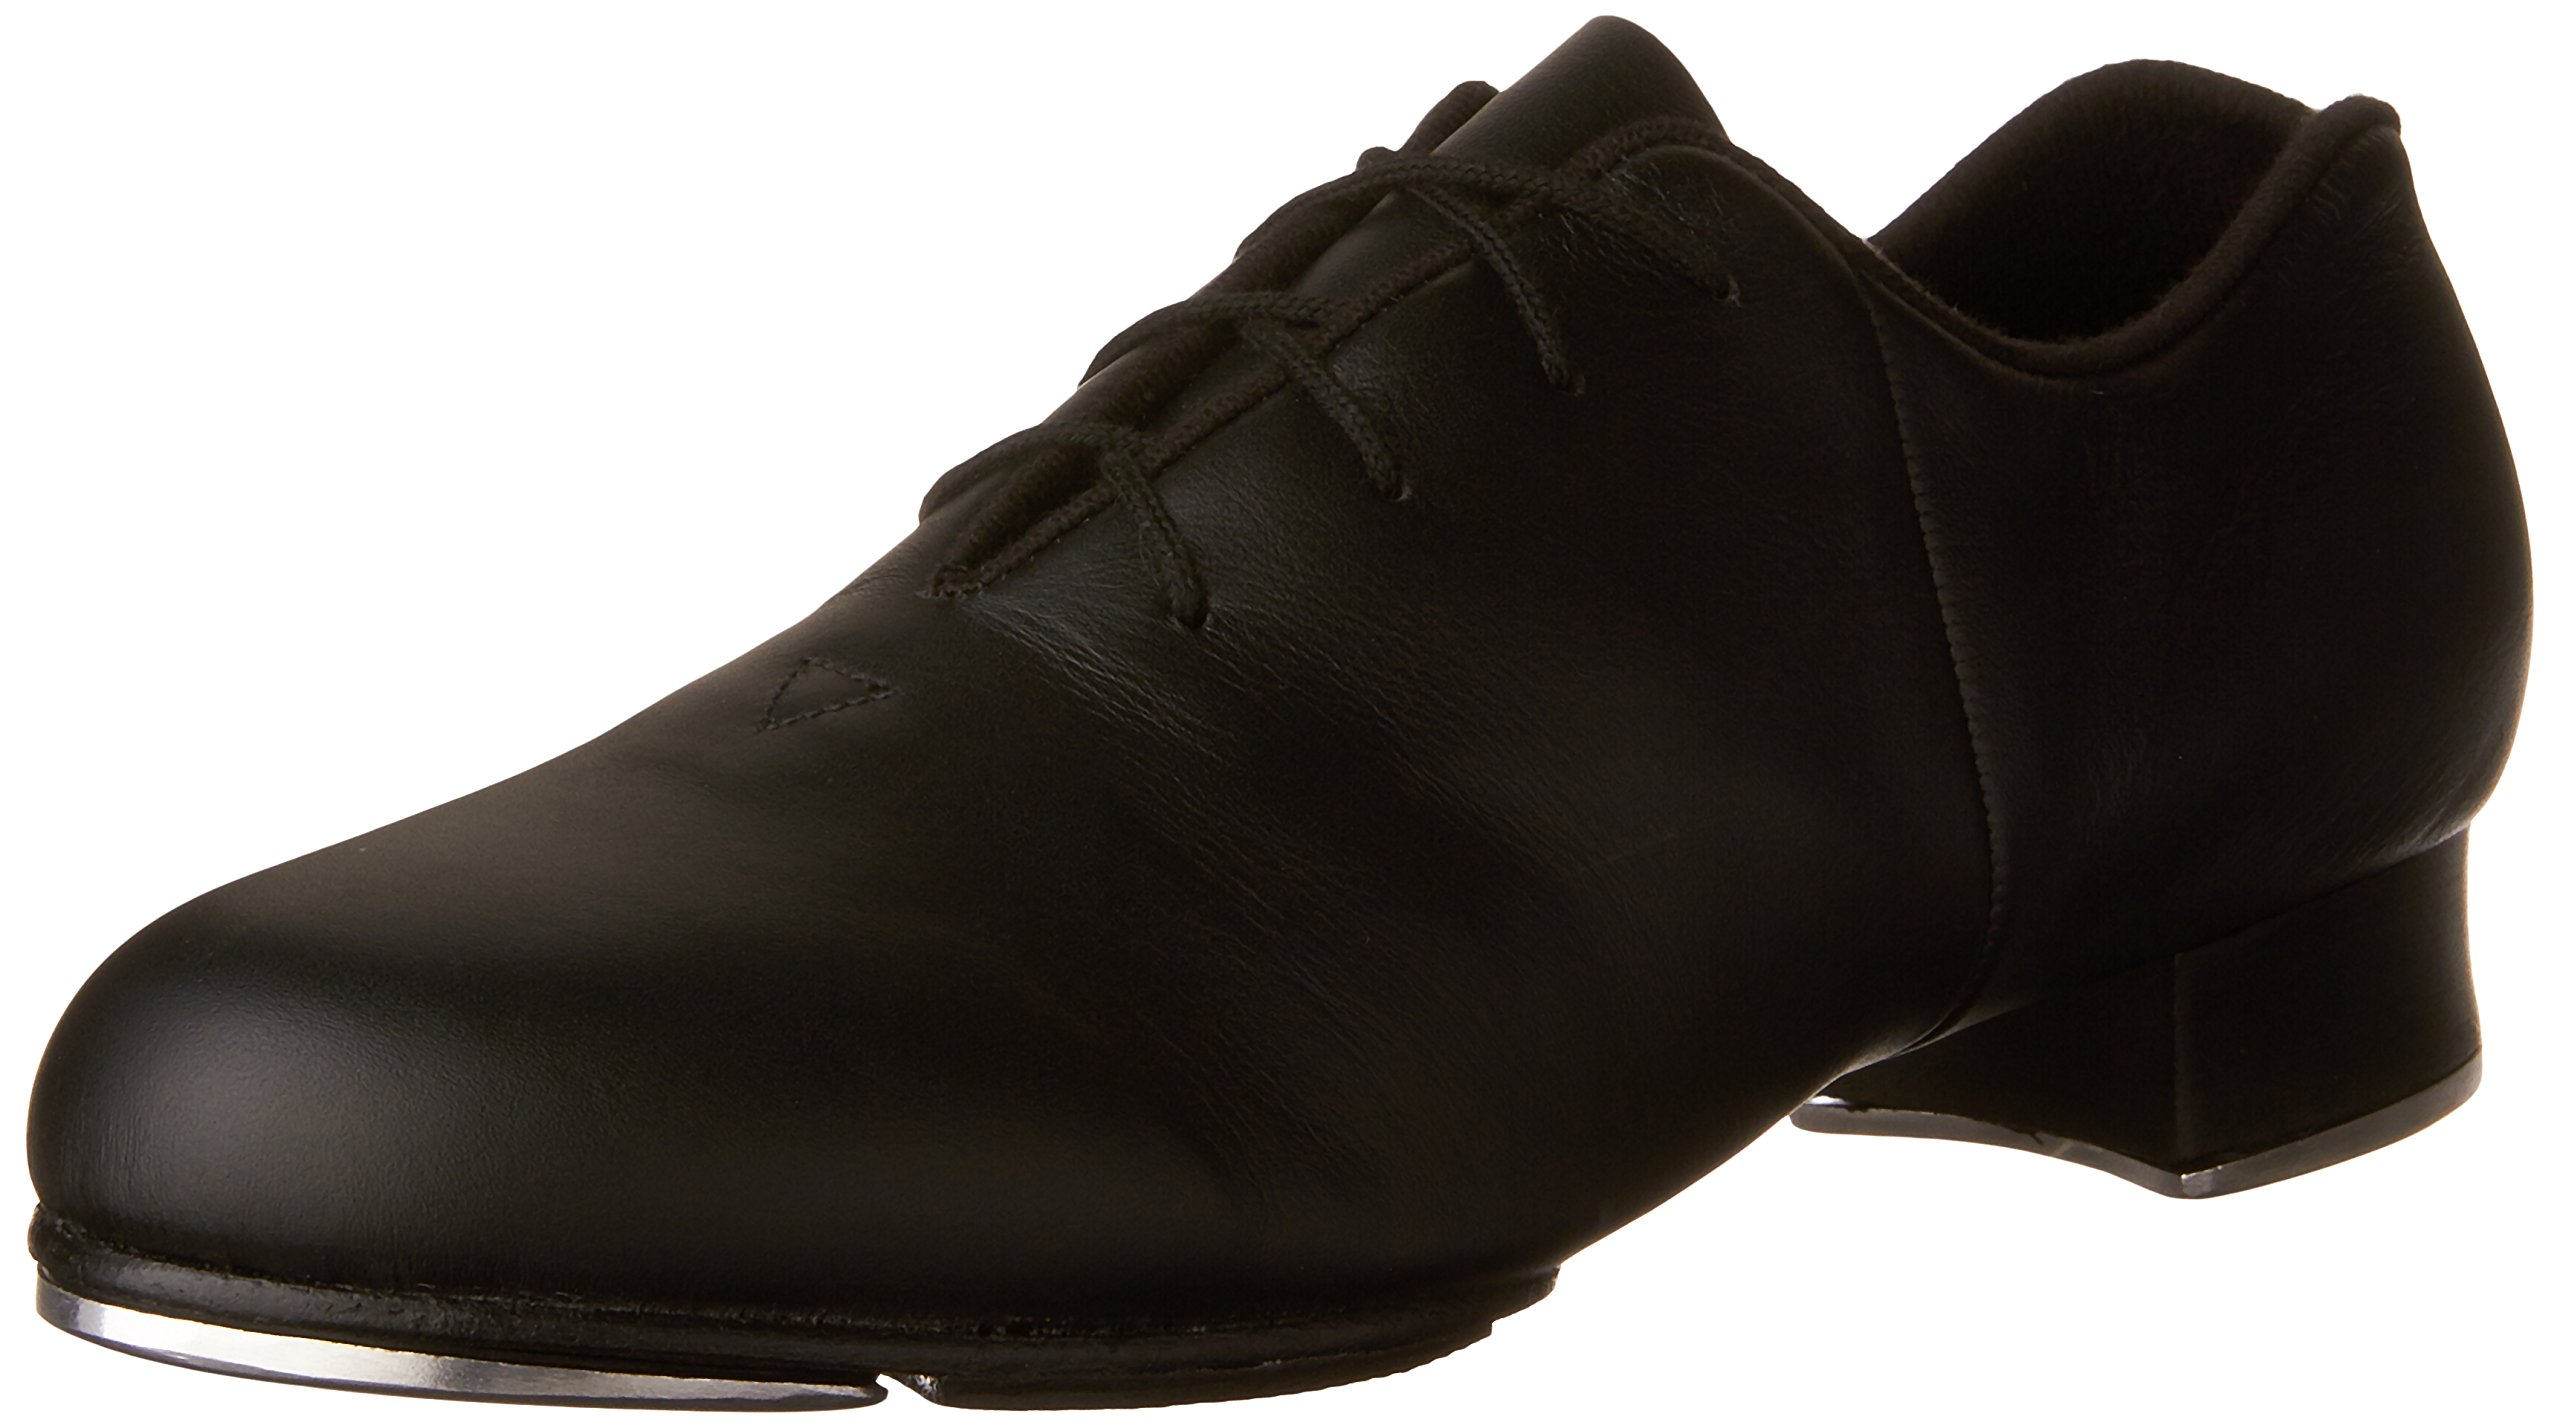 Bloch Women's Tap-Flex Tap Shoe,Black,8 M US by Bloch